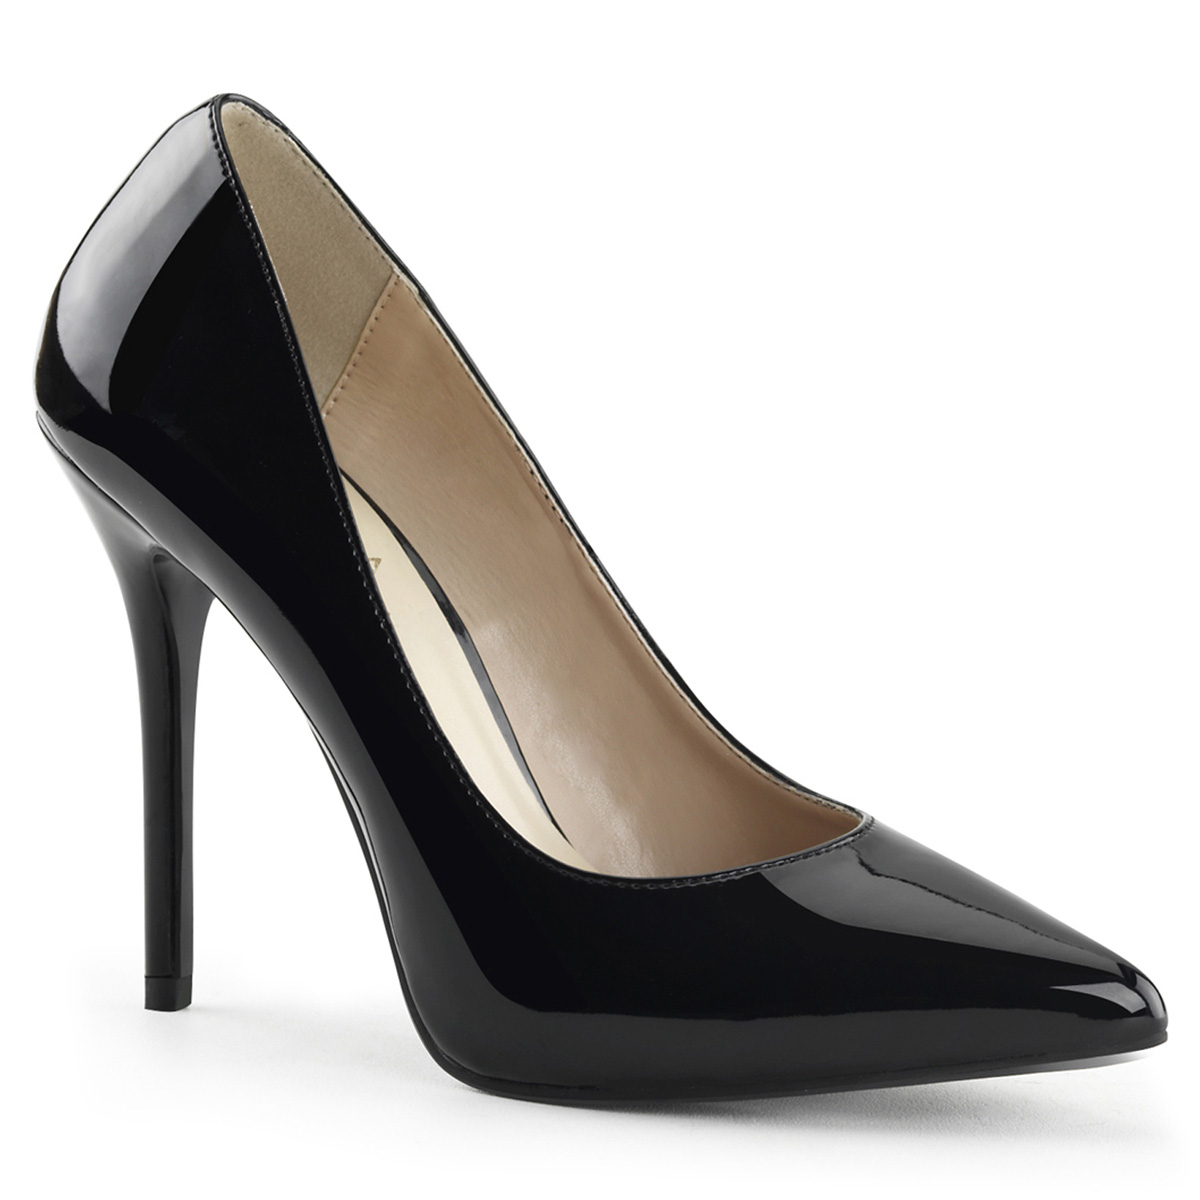 "Pleaser AMUSE-20 Women's Basic Black 5"" High Heels Classic Sexy Stilettos Pumps Shoes at Sears.com"